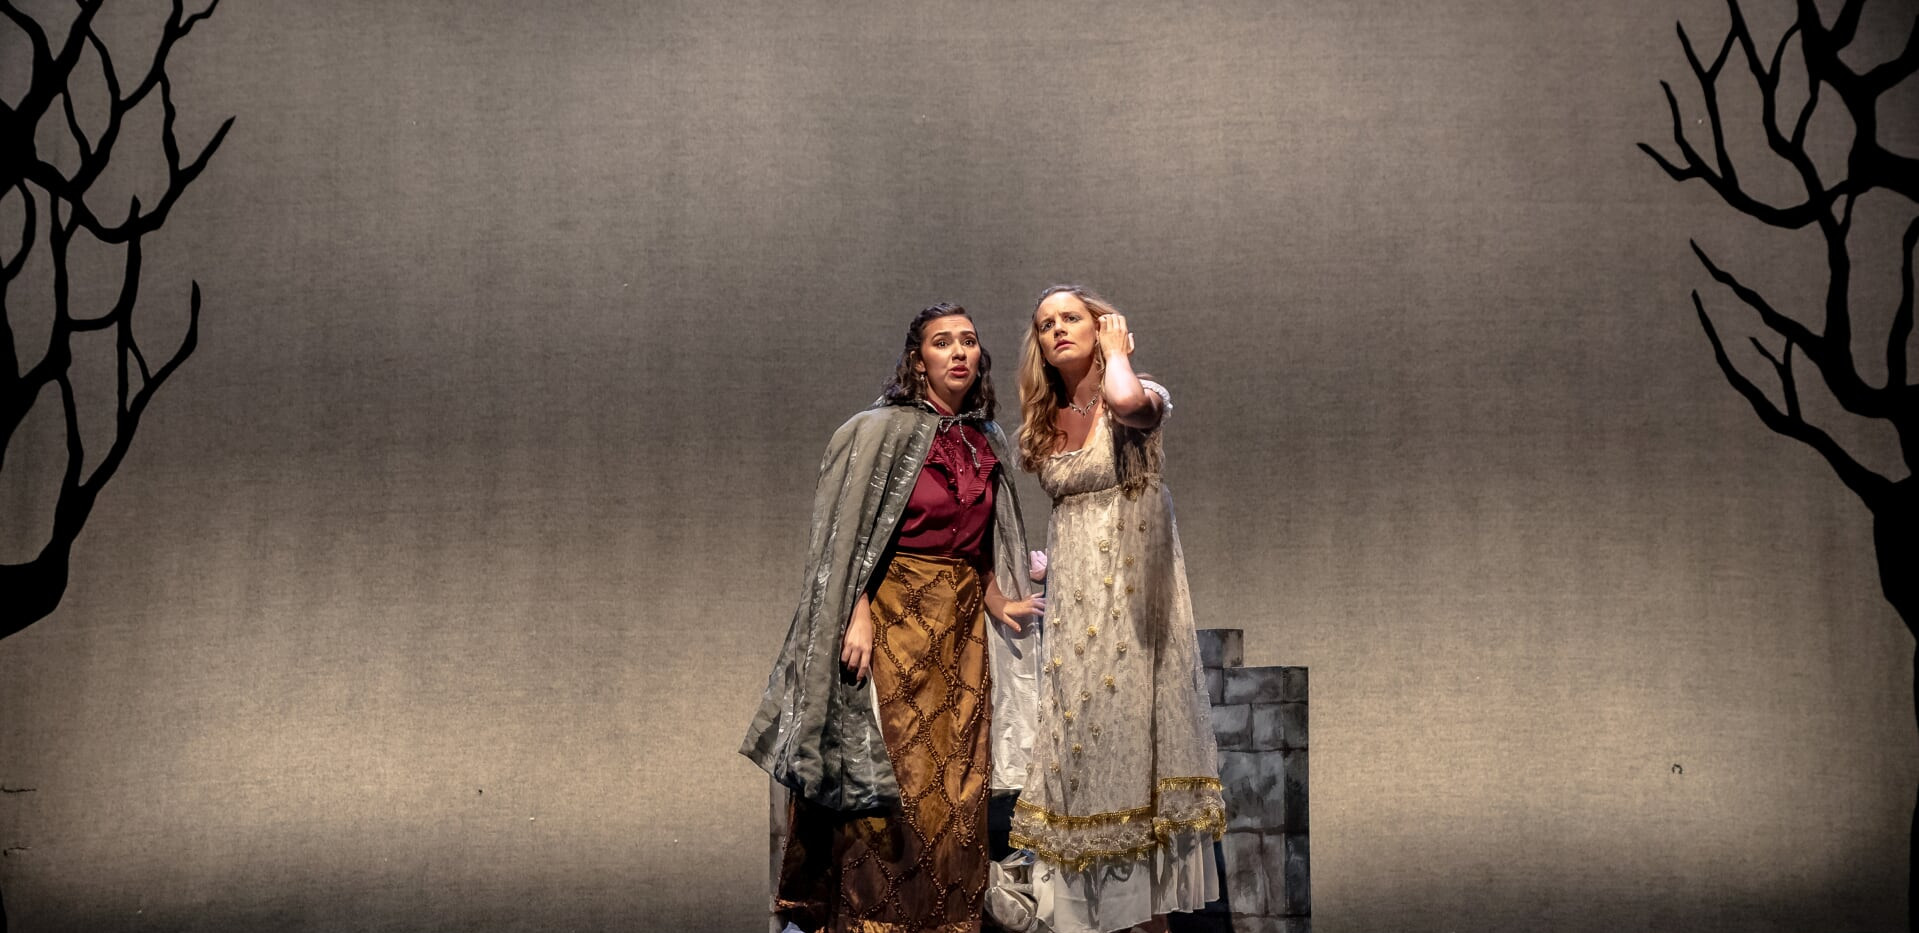 Voices from the tower: Princess Maleiene and her handmaiden Aleta